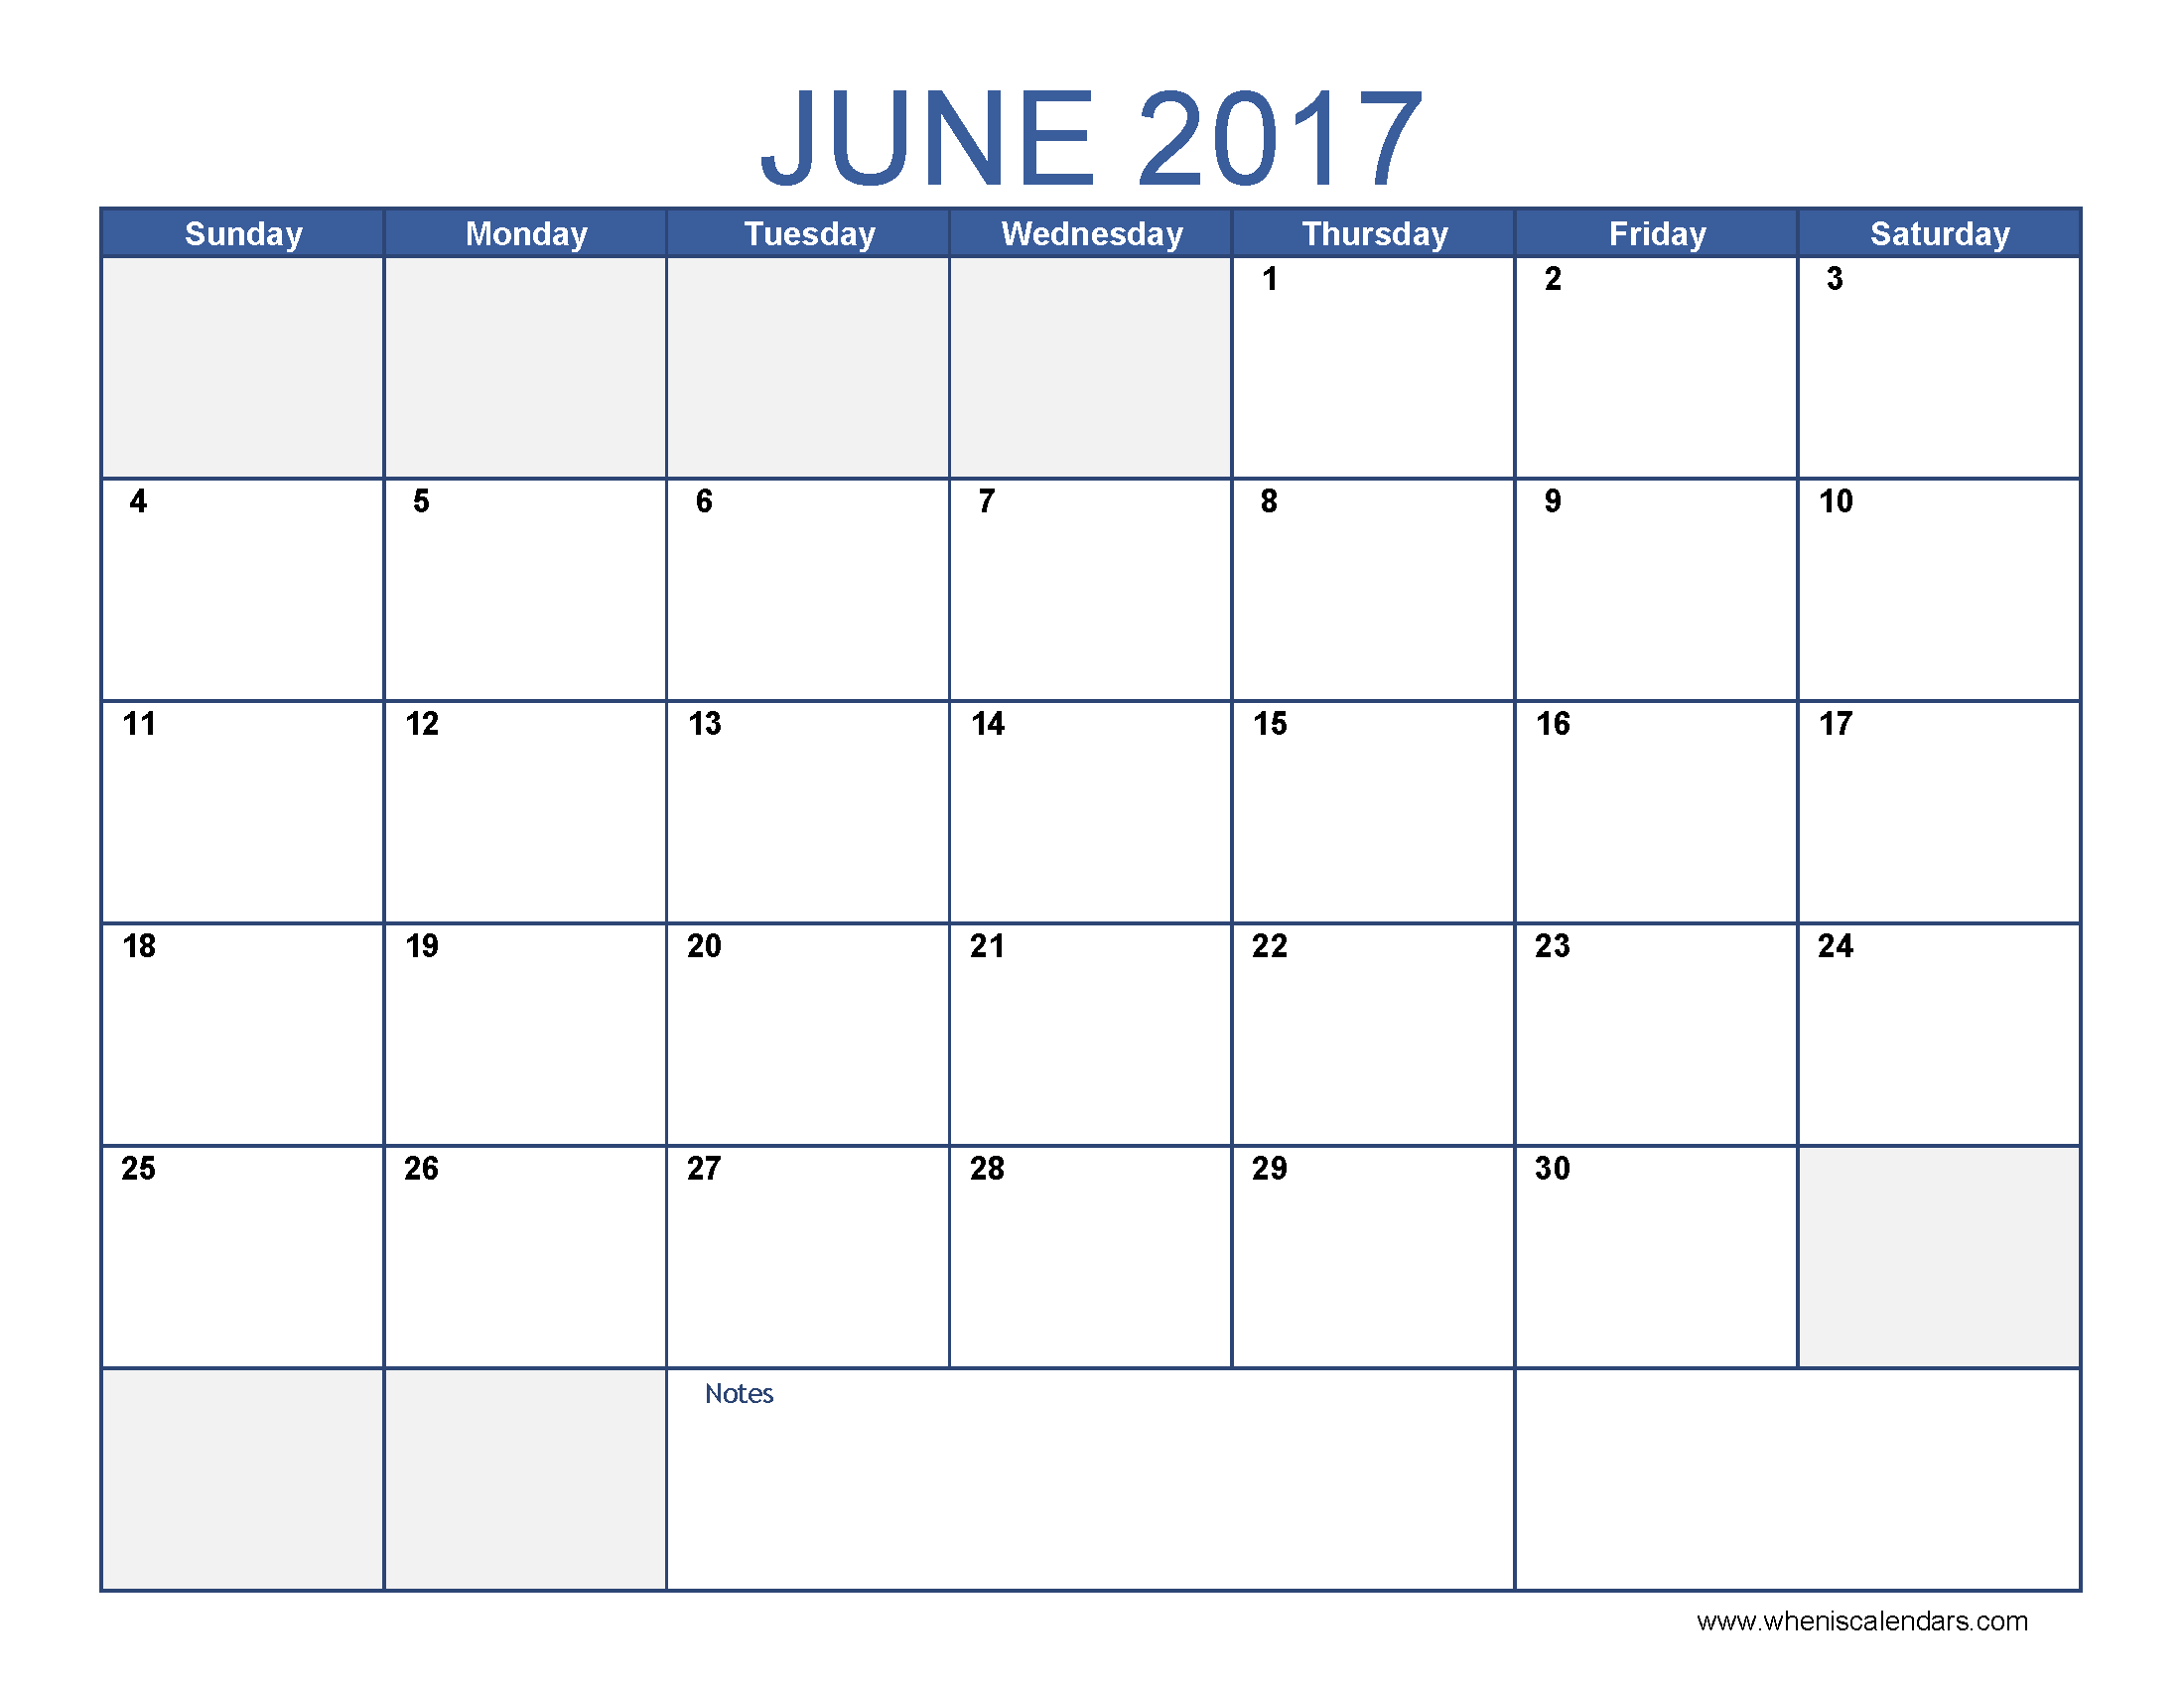 June 2017 Calendar With US Holidays